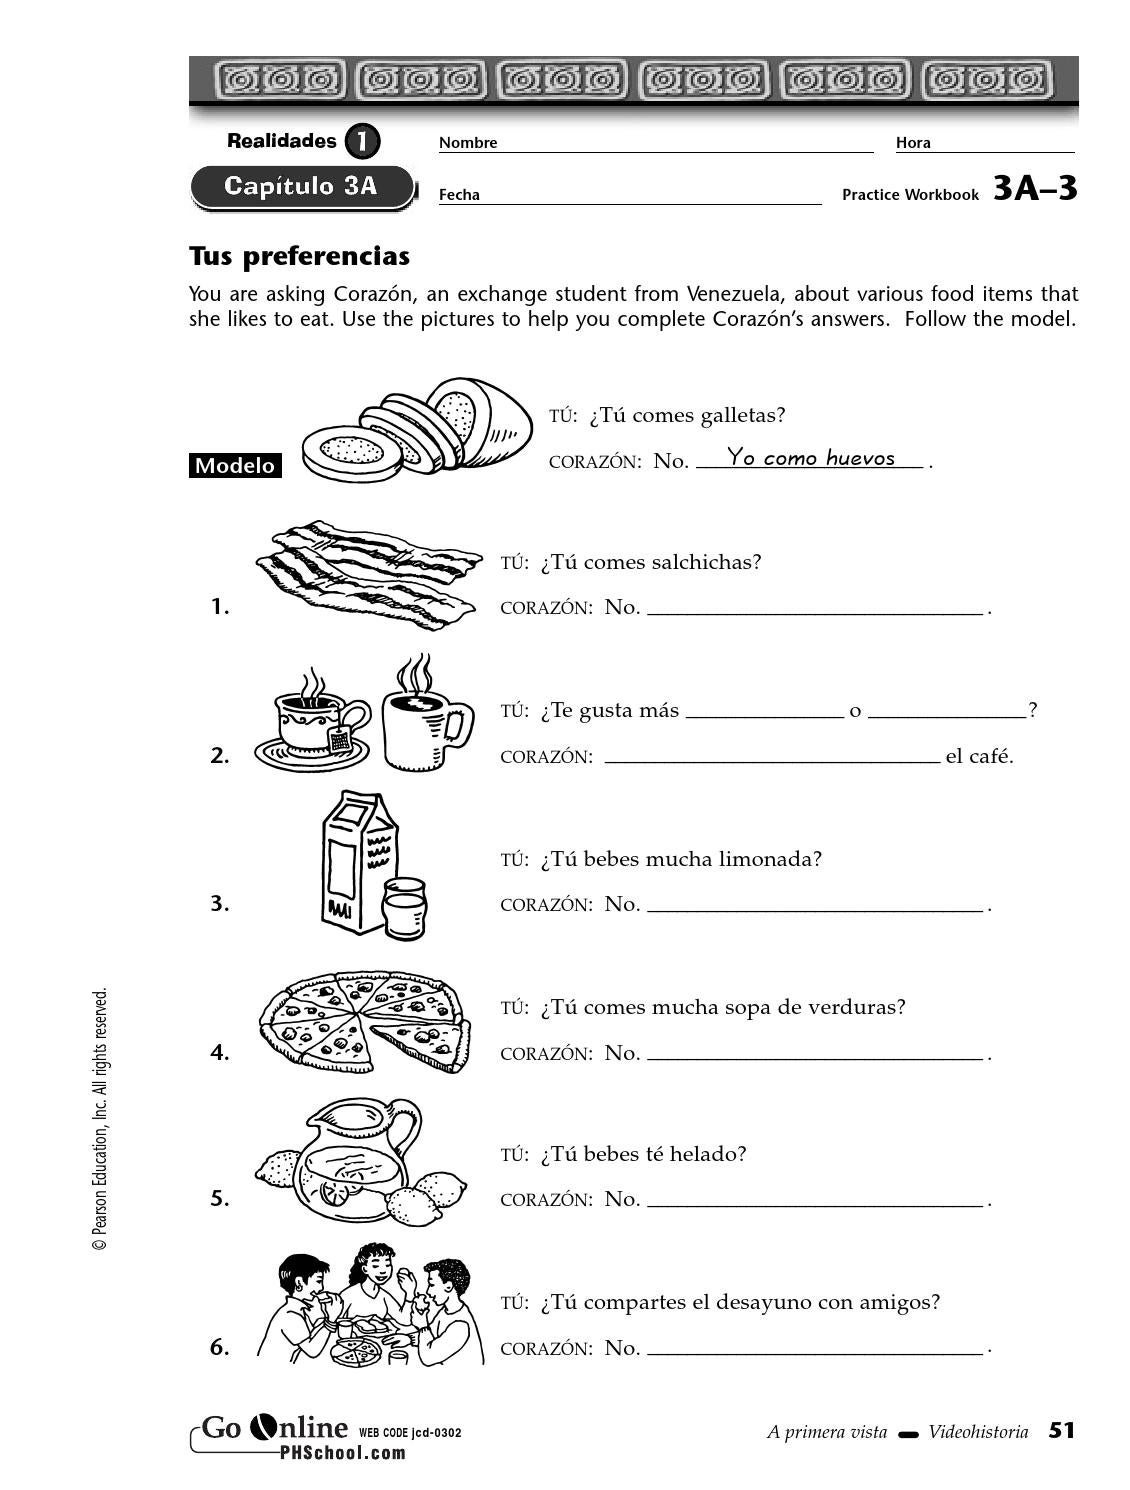 Workbooks realidades 2 capitulo 3a practice workbook answers : Wb 3a 3 by sramadge - issuu